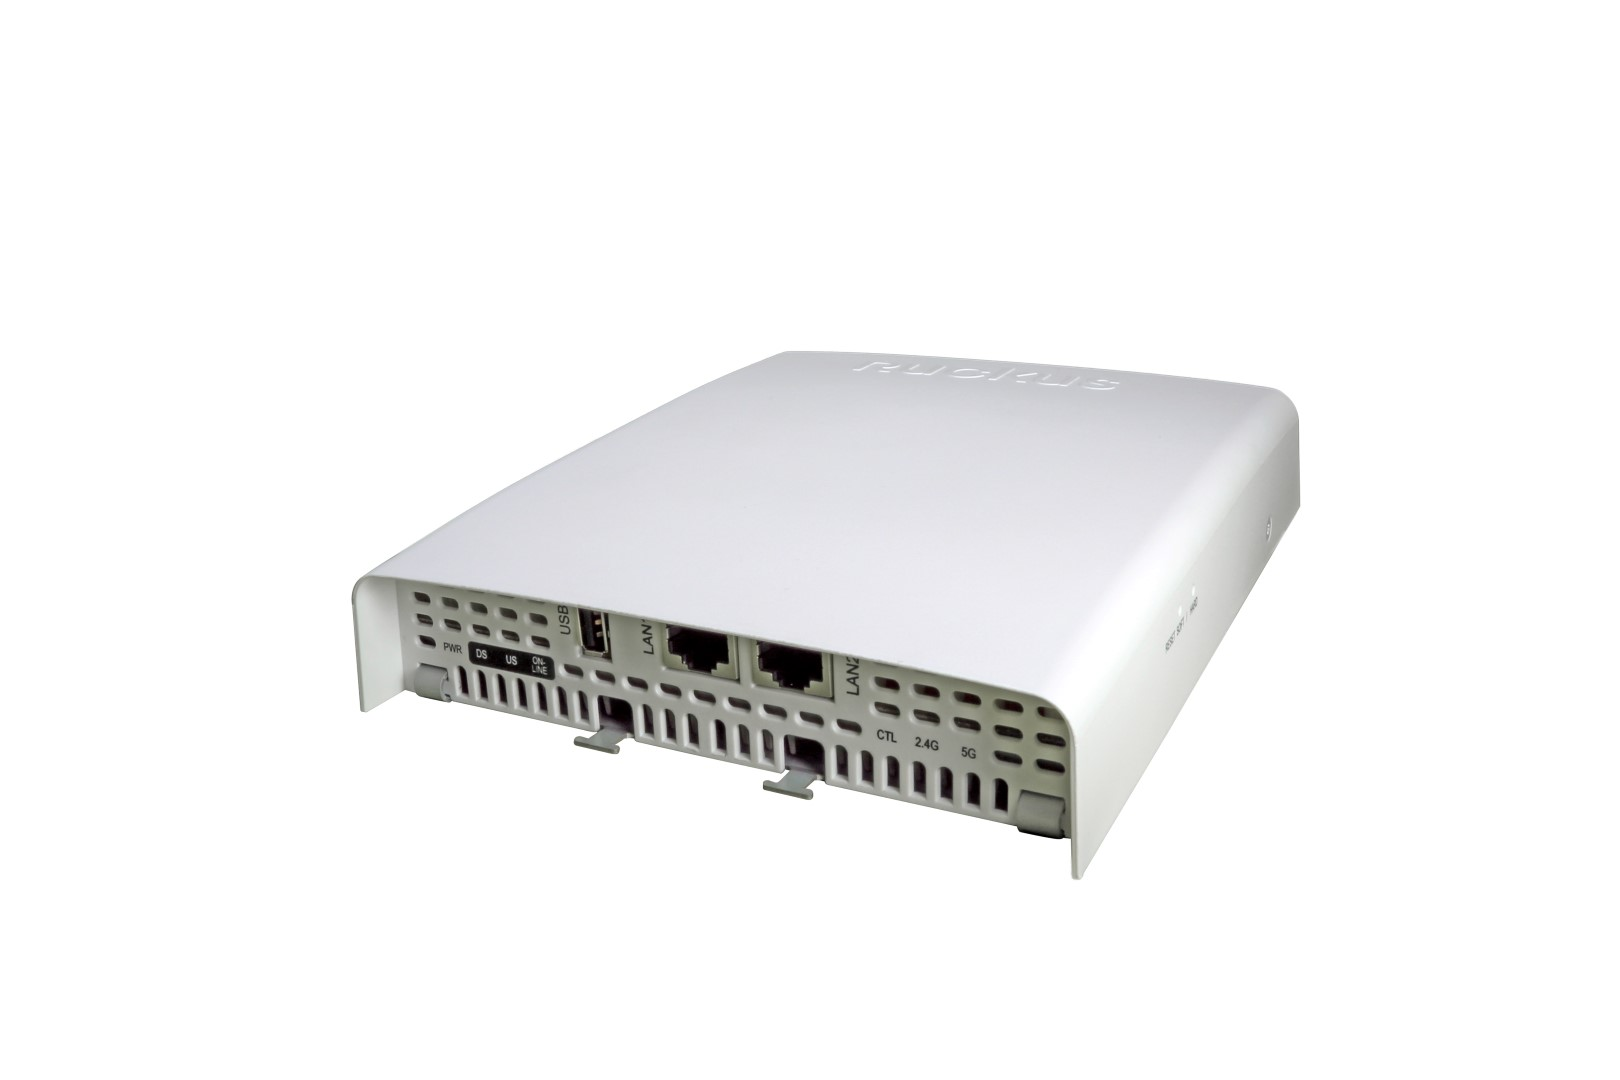 Maksikoms - Ruckus Wireless C110